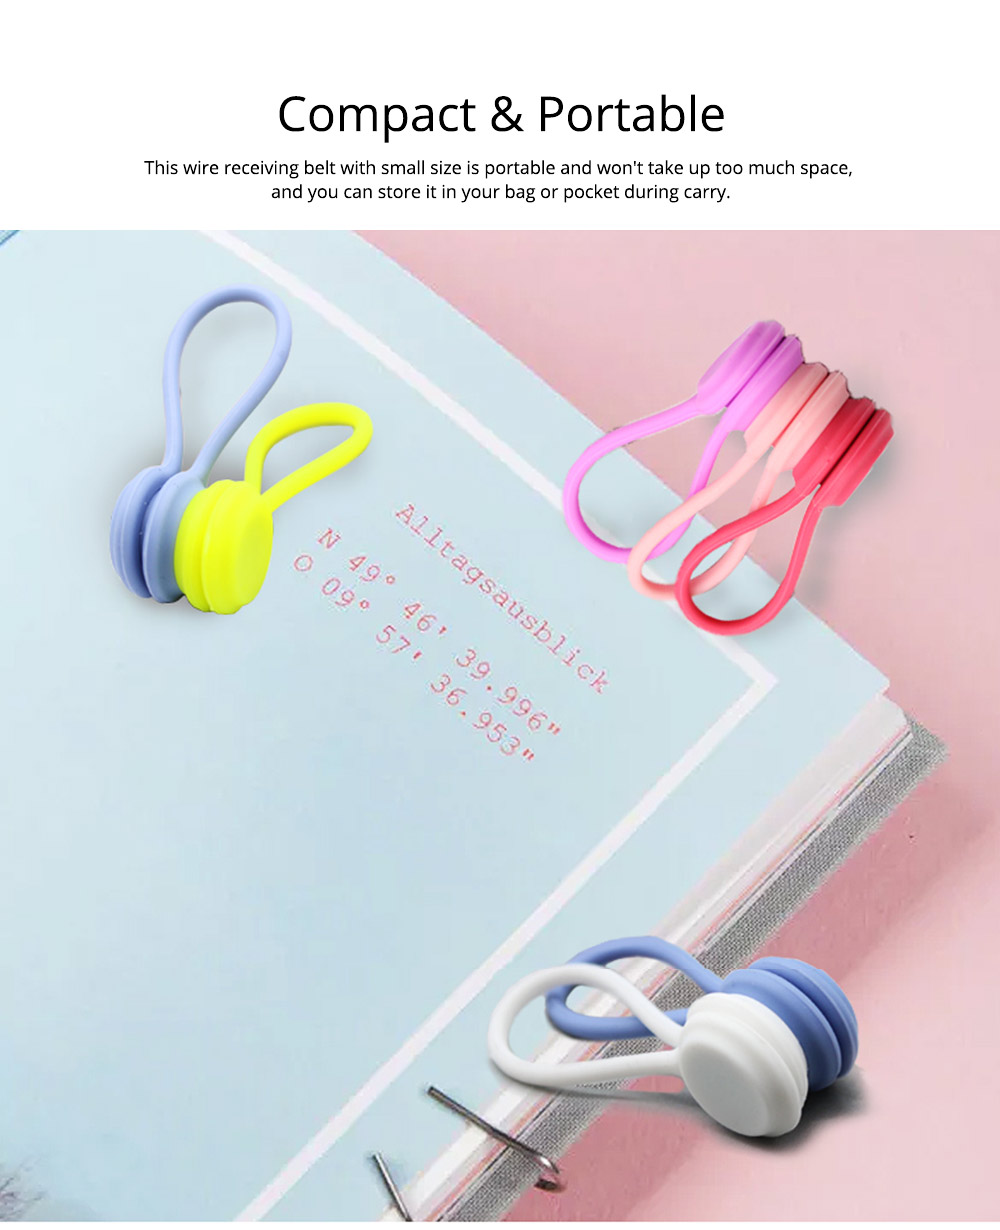 Flexible Silicone Date Wire USB Charger Earphone Management Organizer Tern Suit, Date Line Receiving Belt with Strong Magnet 3